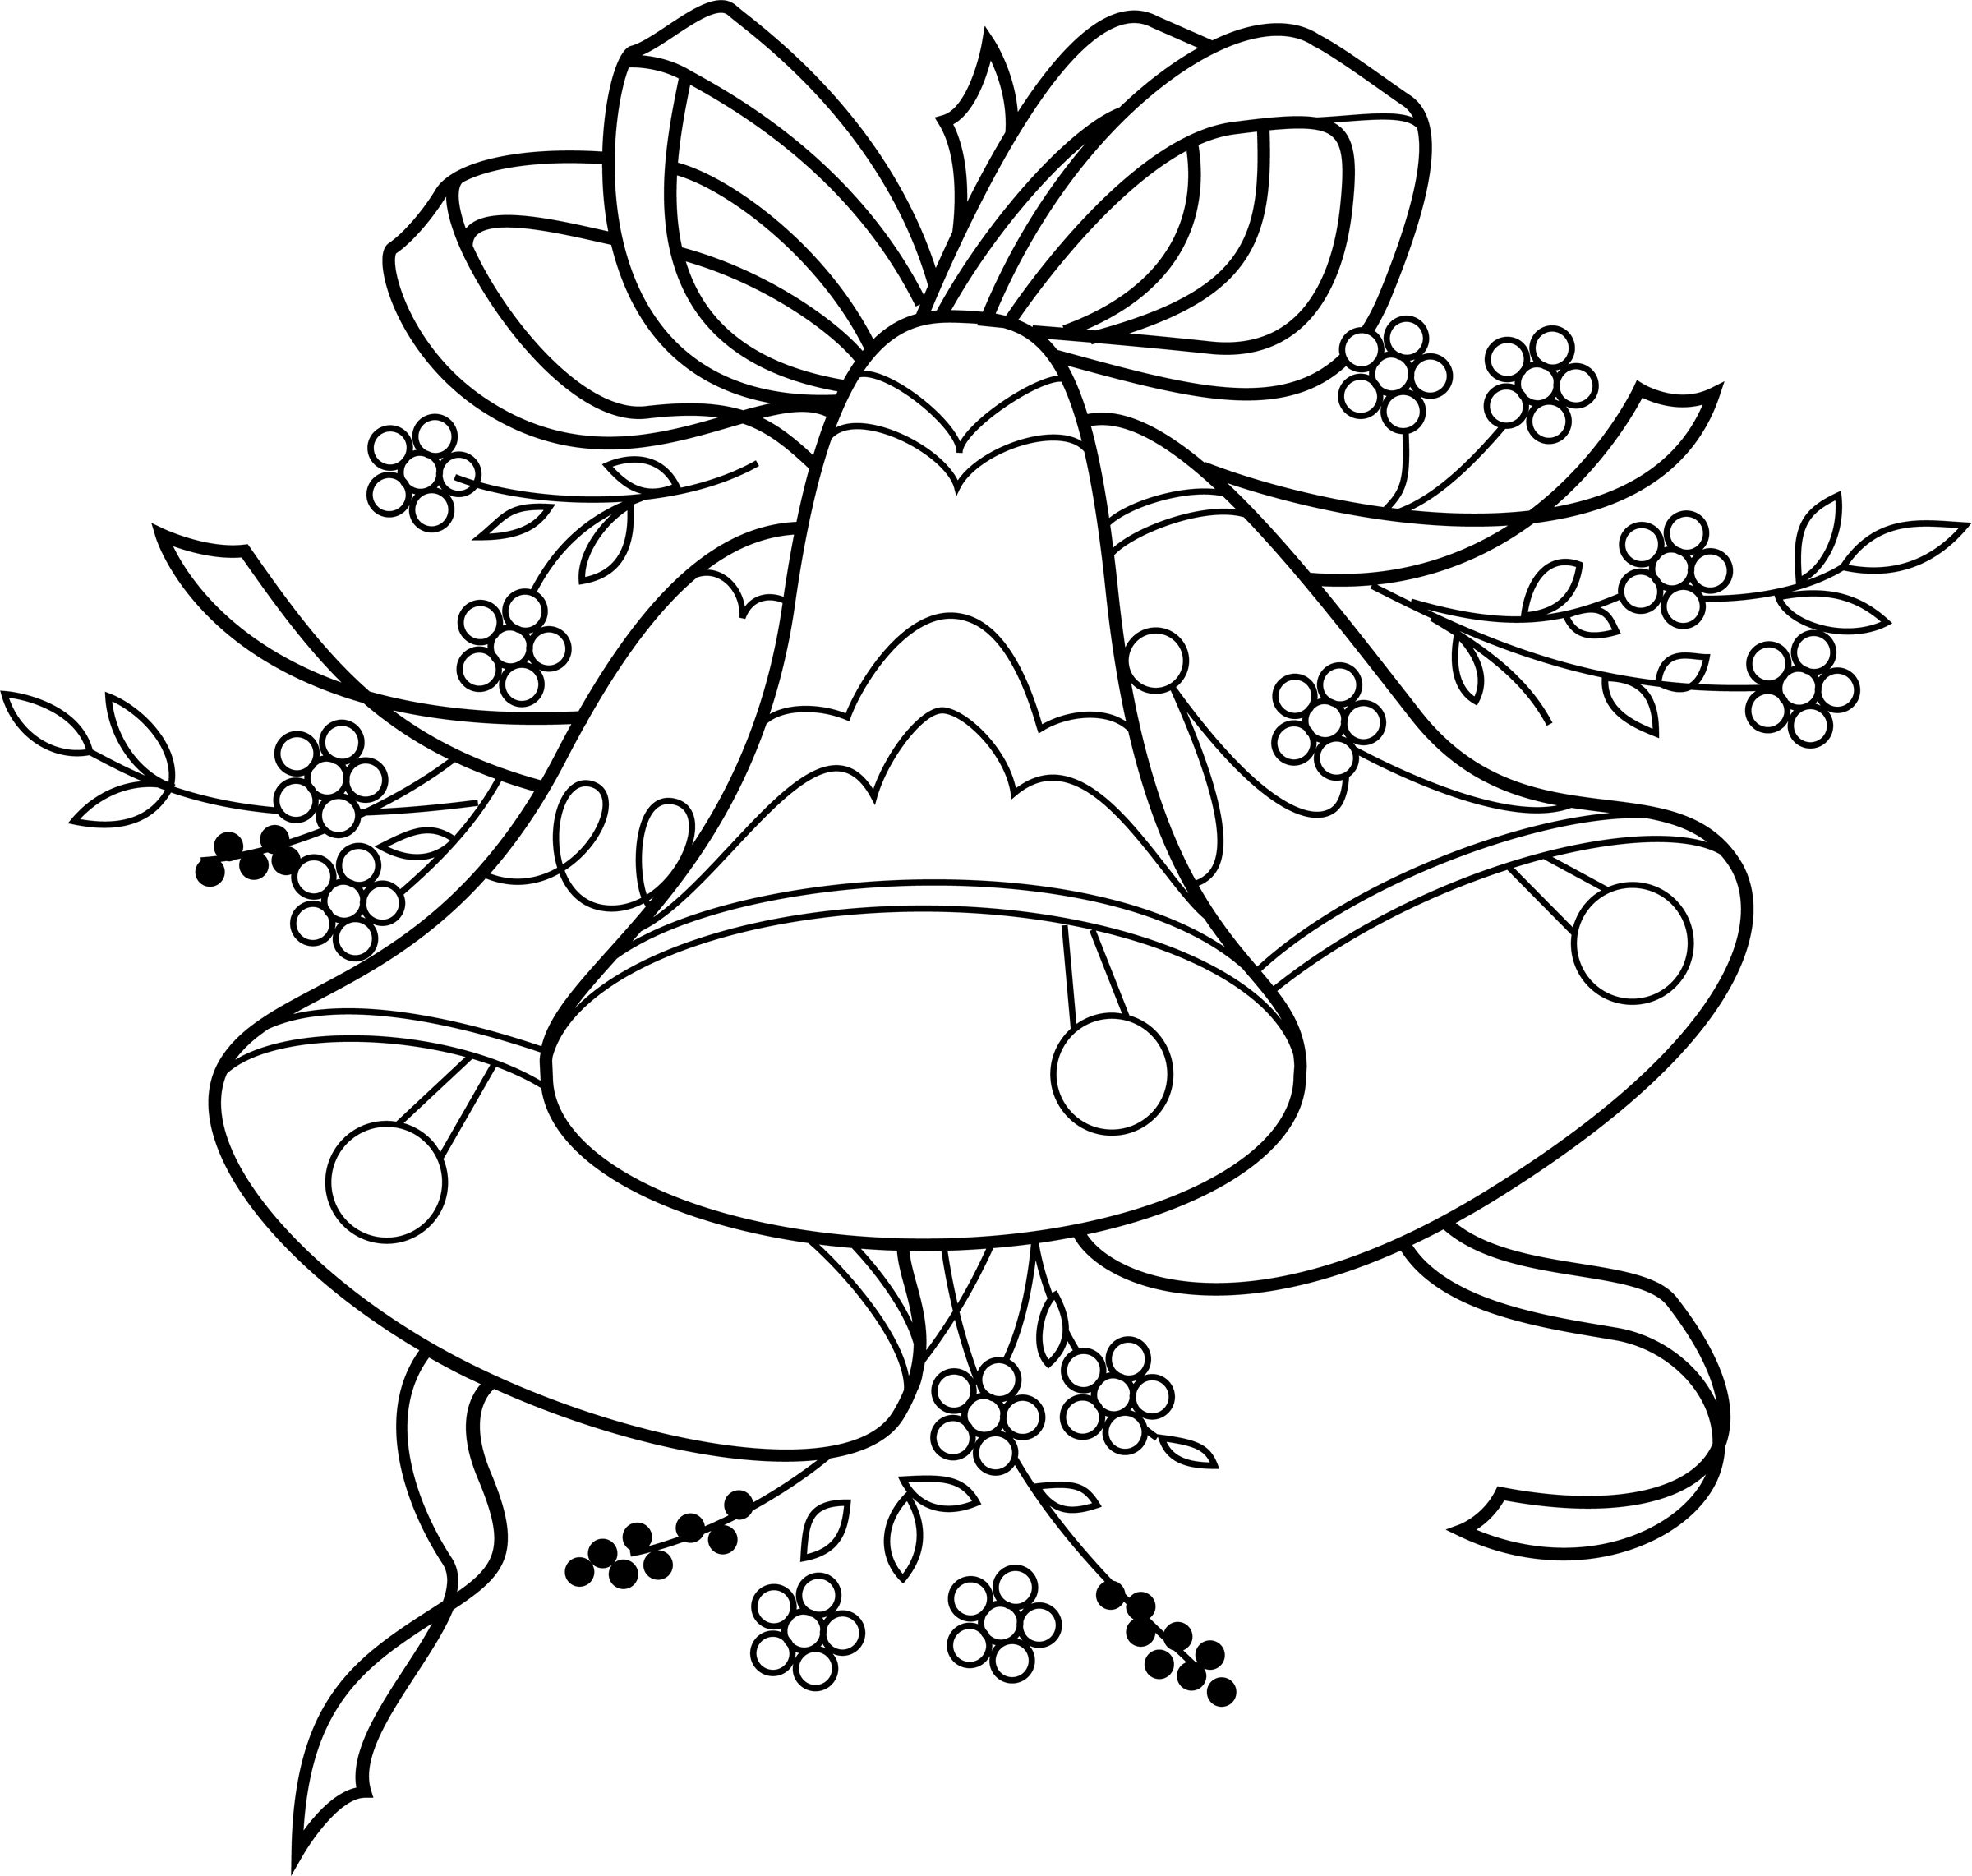 Vintage wedding bells clipart clipart black and white library Free Wedding Bells, Download Free Clip Art, Free Clip Art on ... clipart black and white library